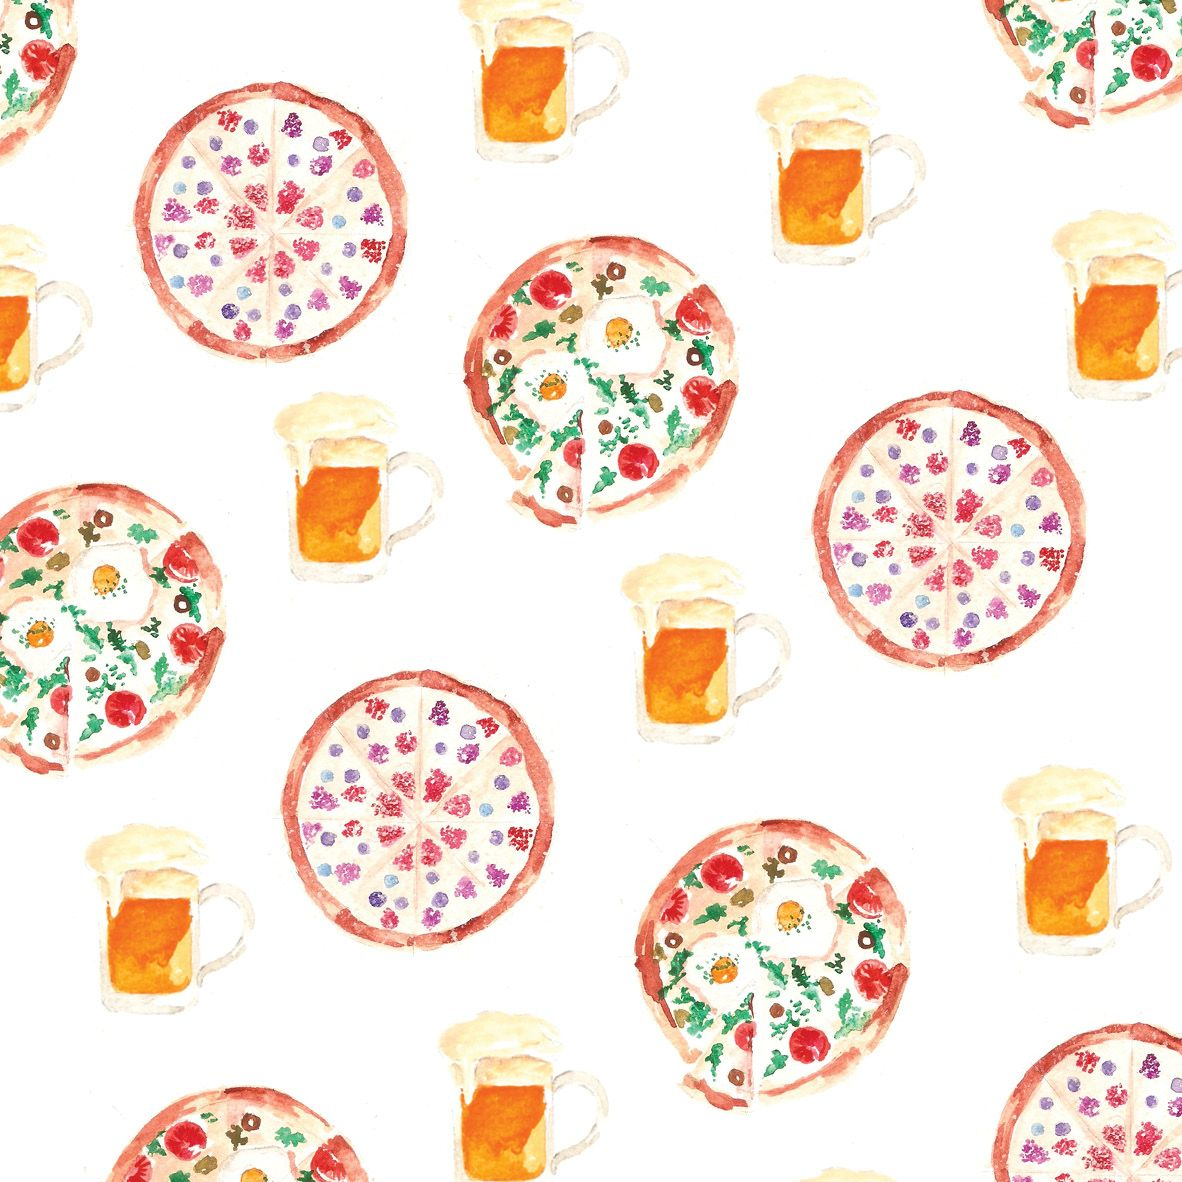 pizza and beer pattern for communication process handout about Pizza e Birra!